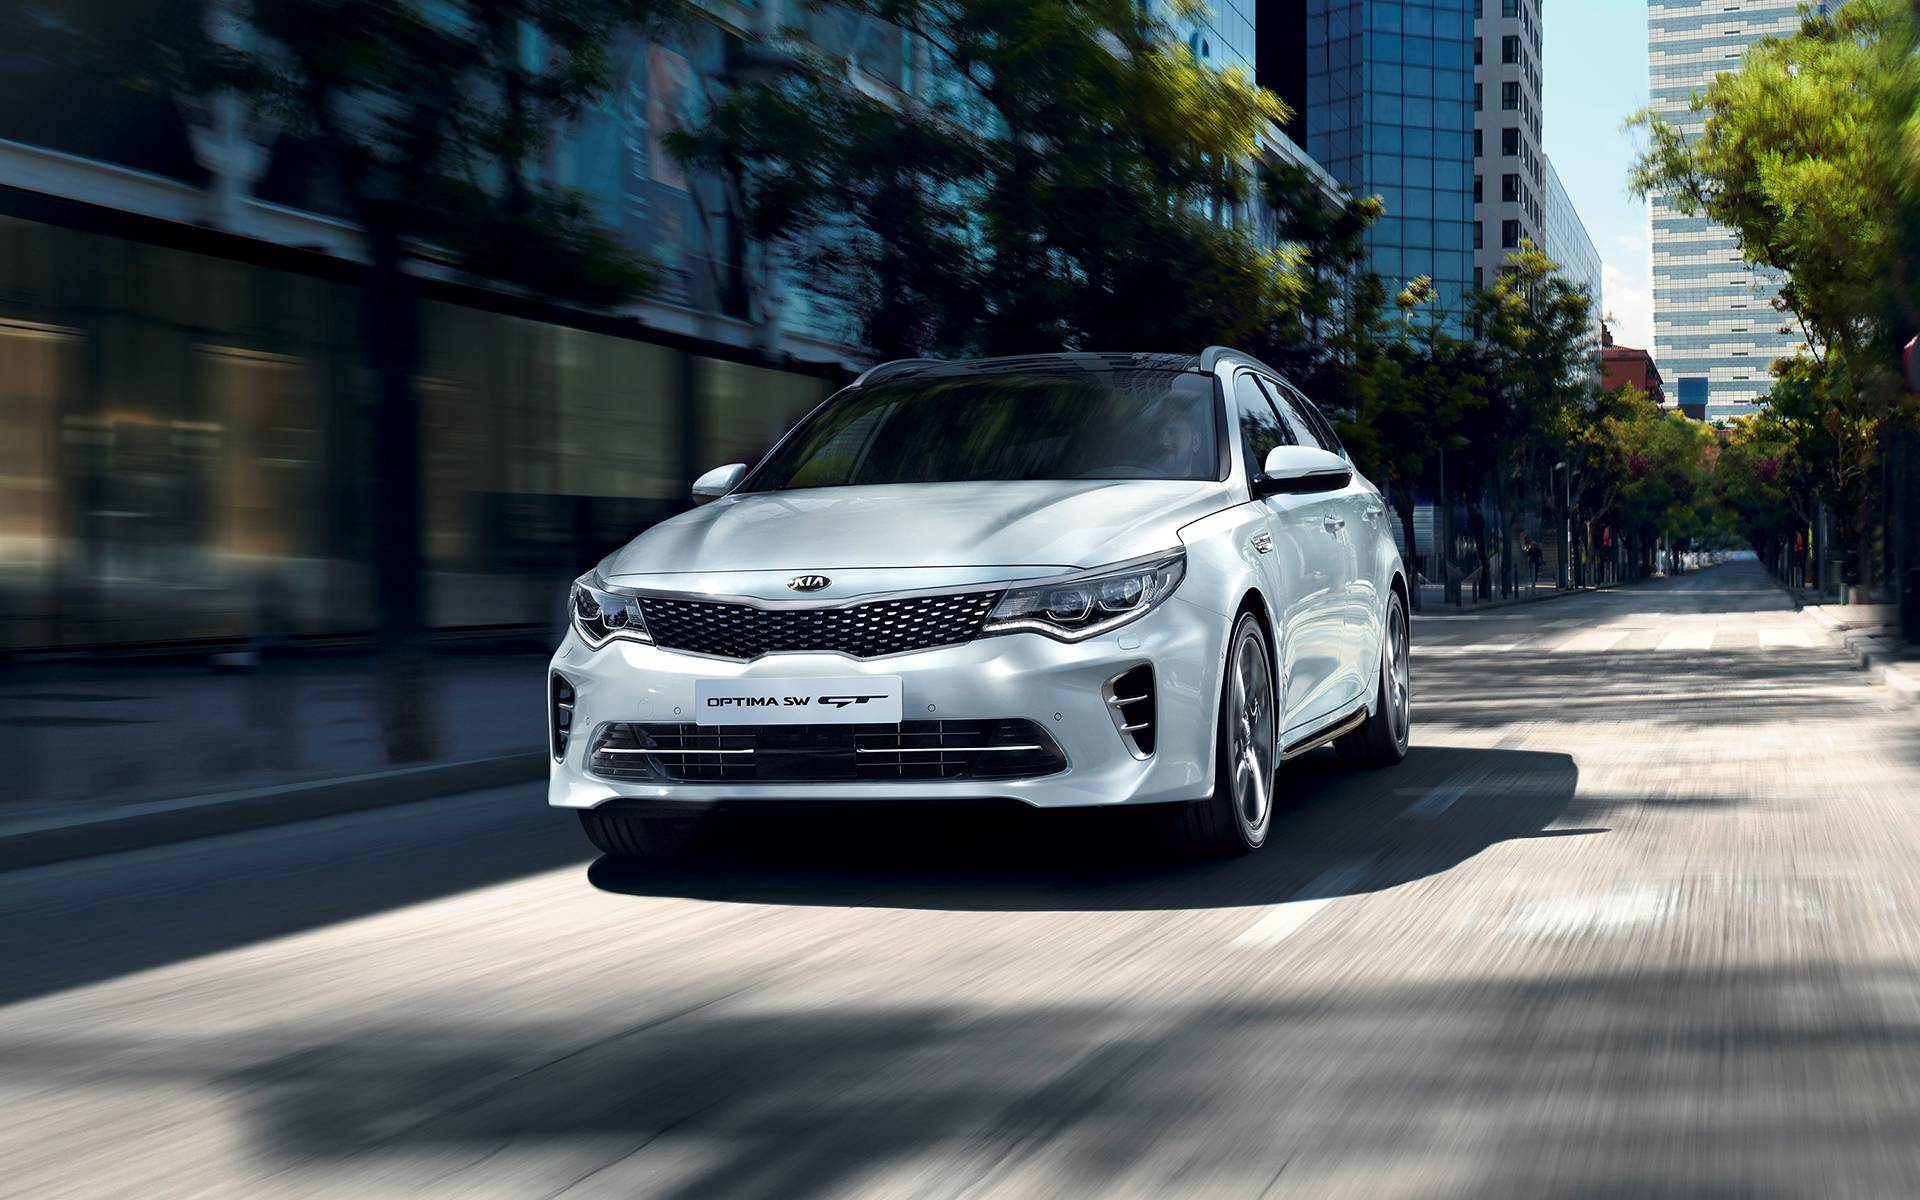 Kia Optima Sportswagon GT-Line - in evidenza